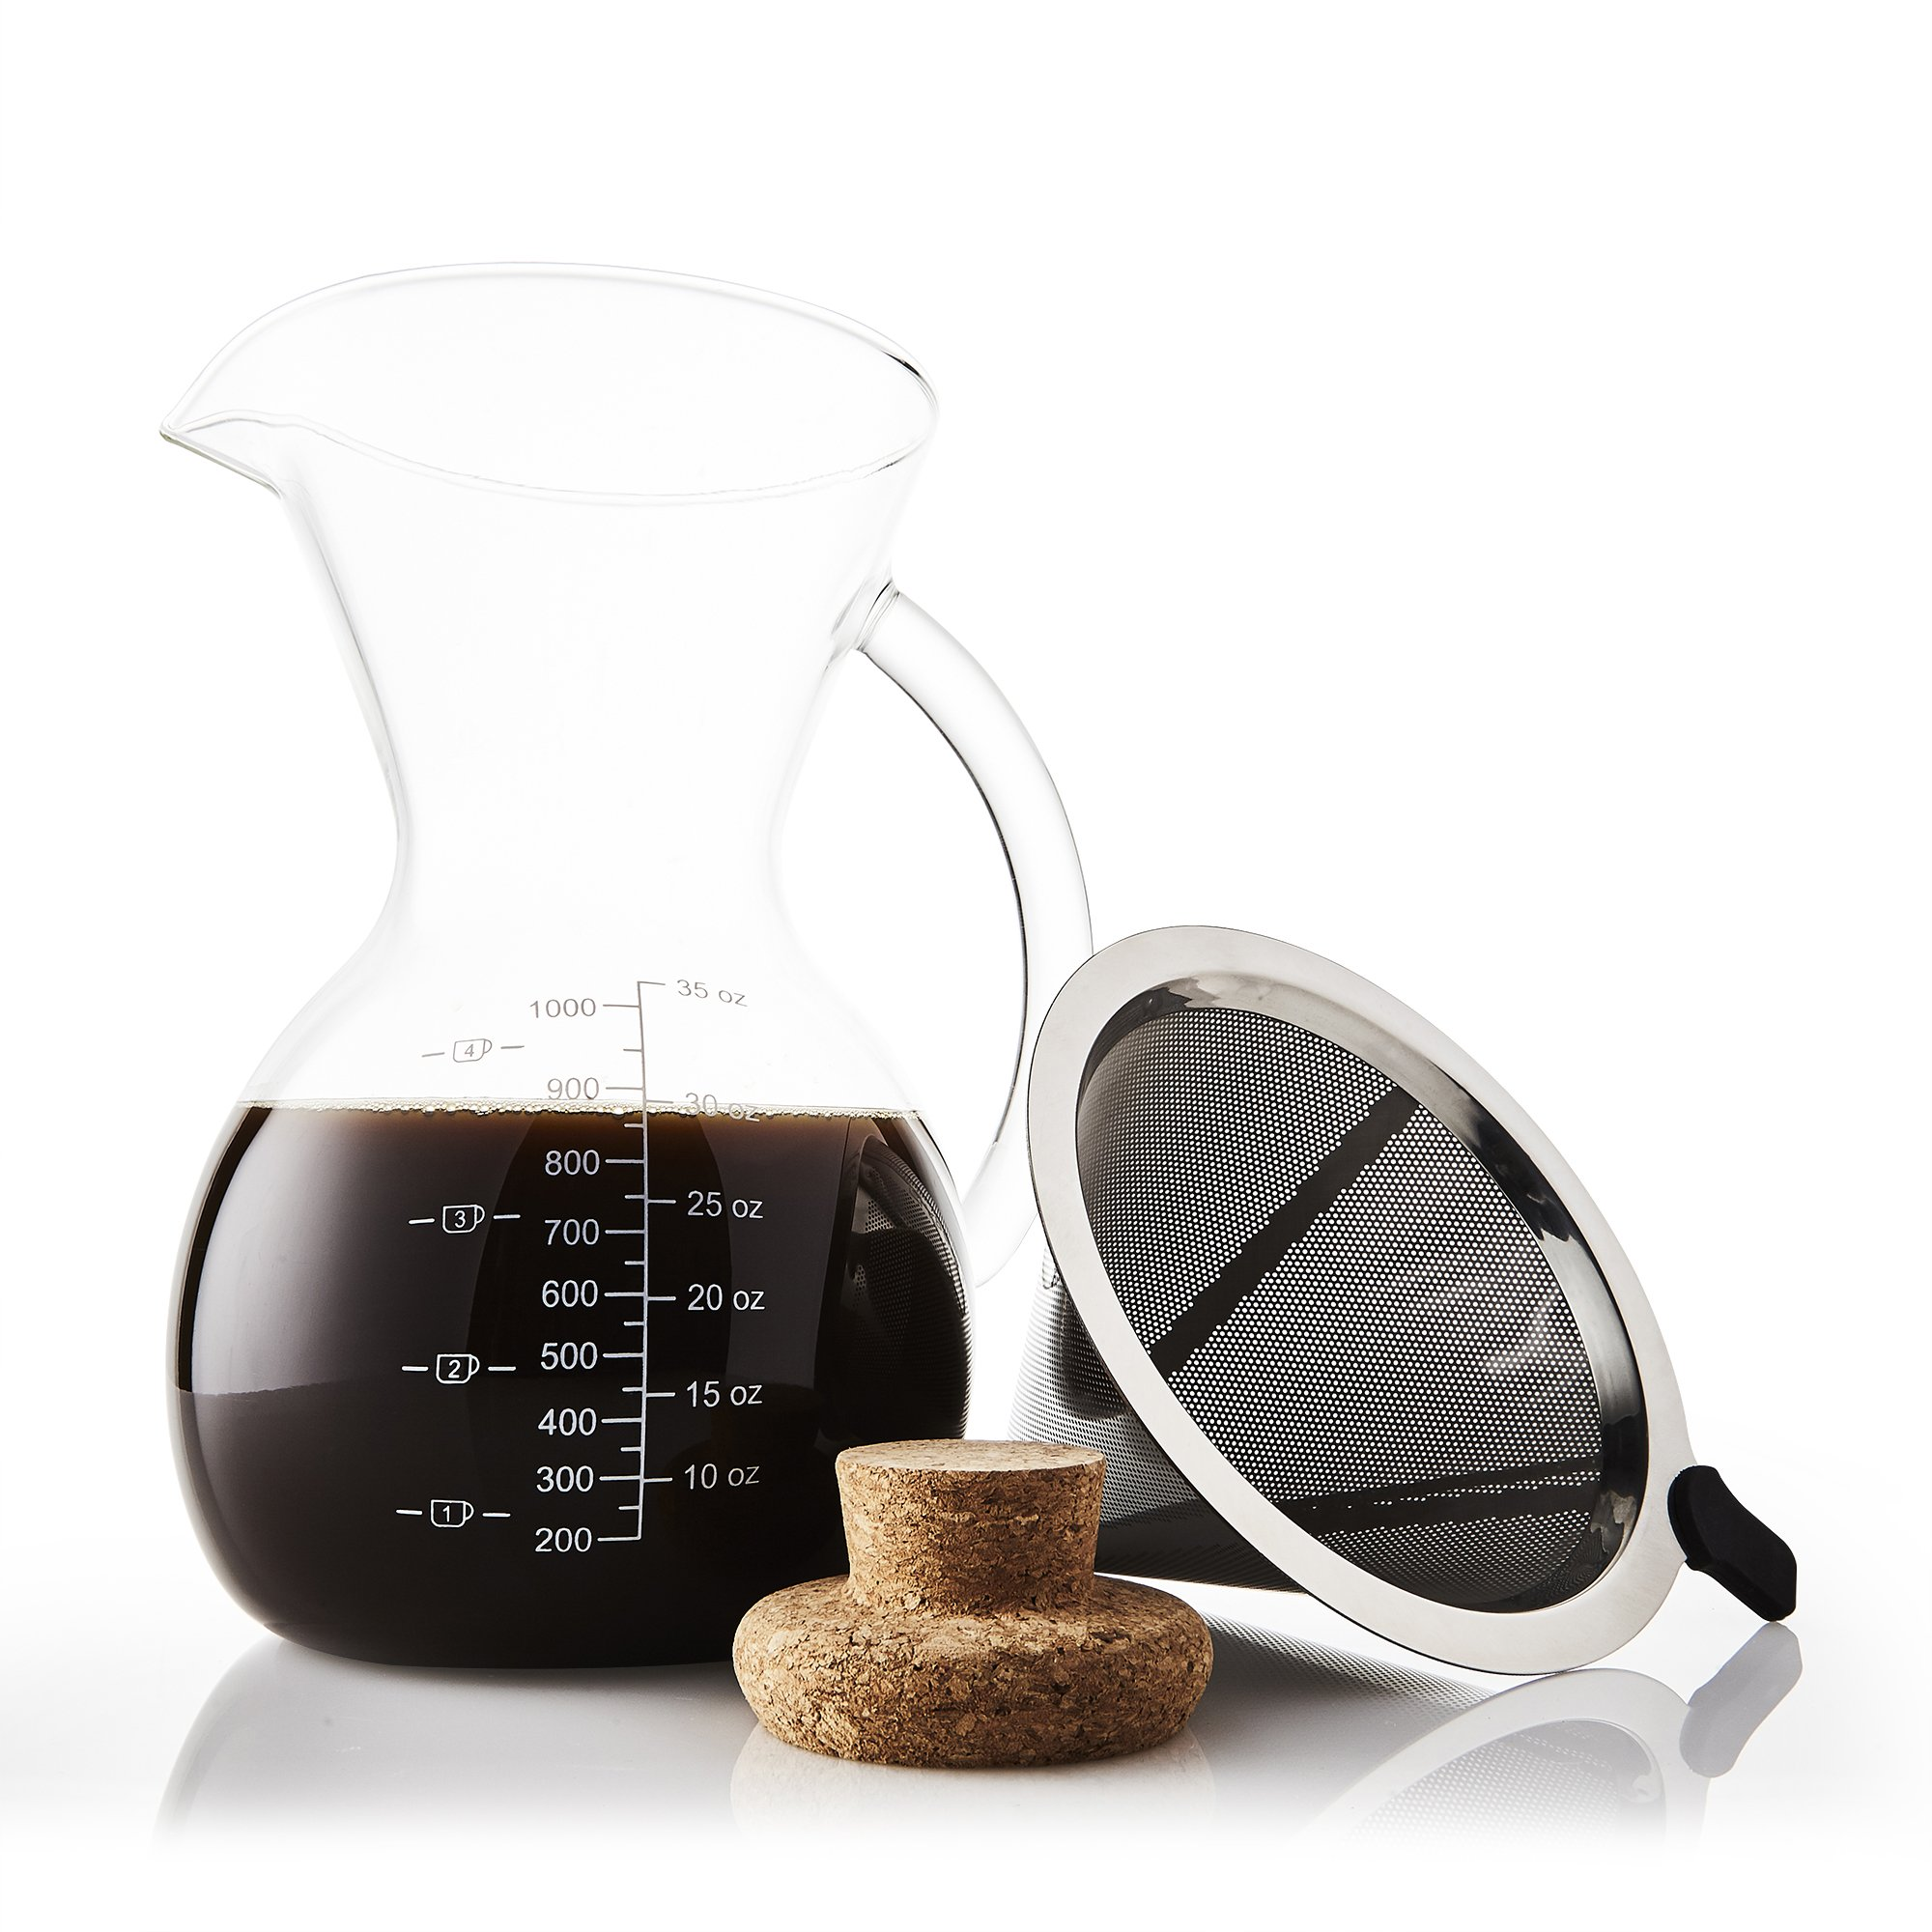 Apace Living Pour Over Coffee Maker Set w/Coffee Scoop and Cork Lid - Elegant Coffee Dripper Pot w/Glass Carafe & Permanent Stainless Steel Filter (1000 ml / 34 oz)